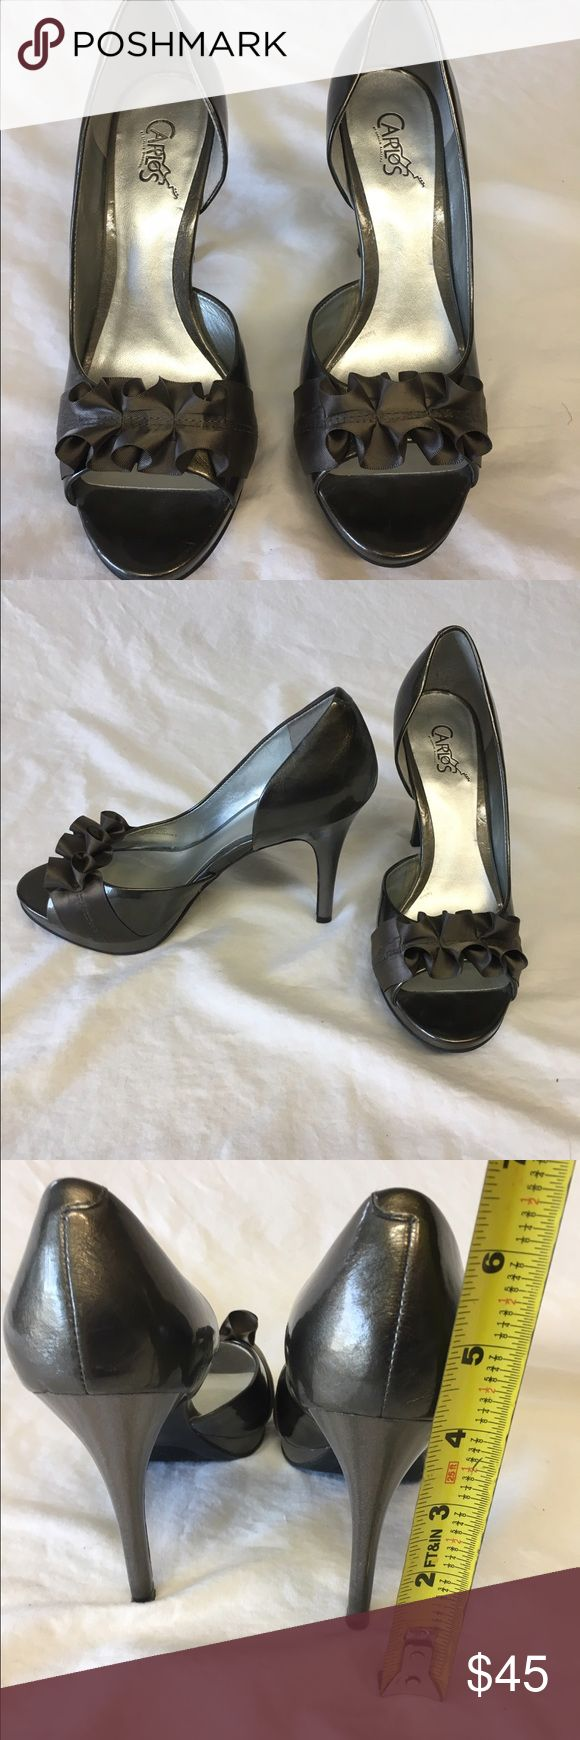 Carlos heels - Grey with open toe ruffle Stunning heels are great with business dress or going out - just a beautiful pair of grey heels Carlos Santana Shoes Heels